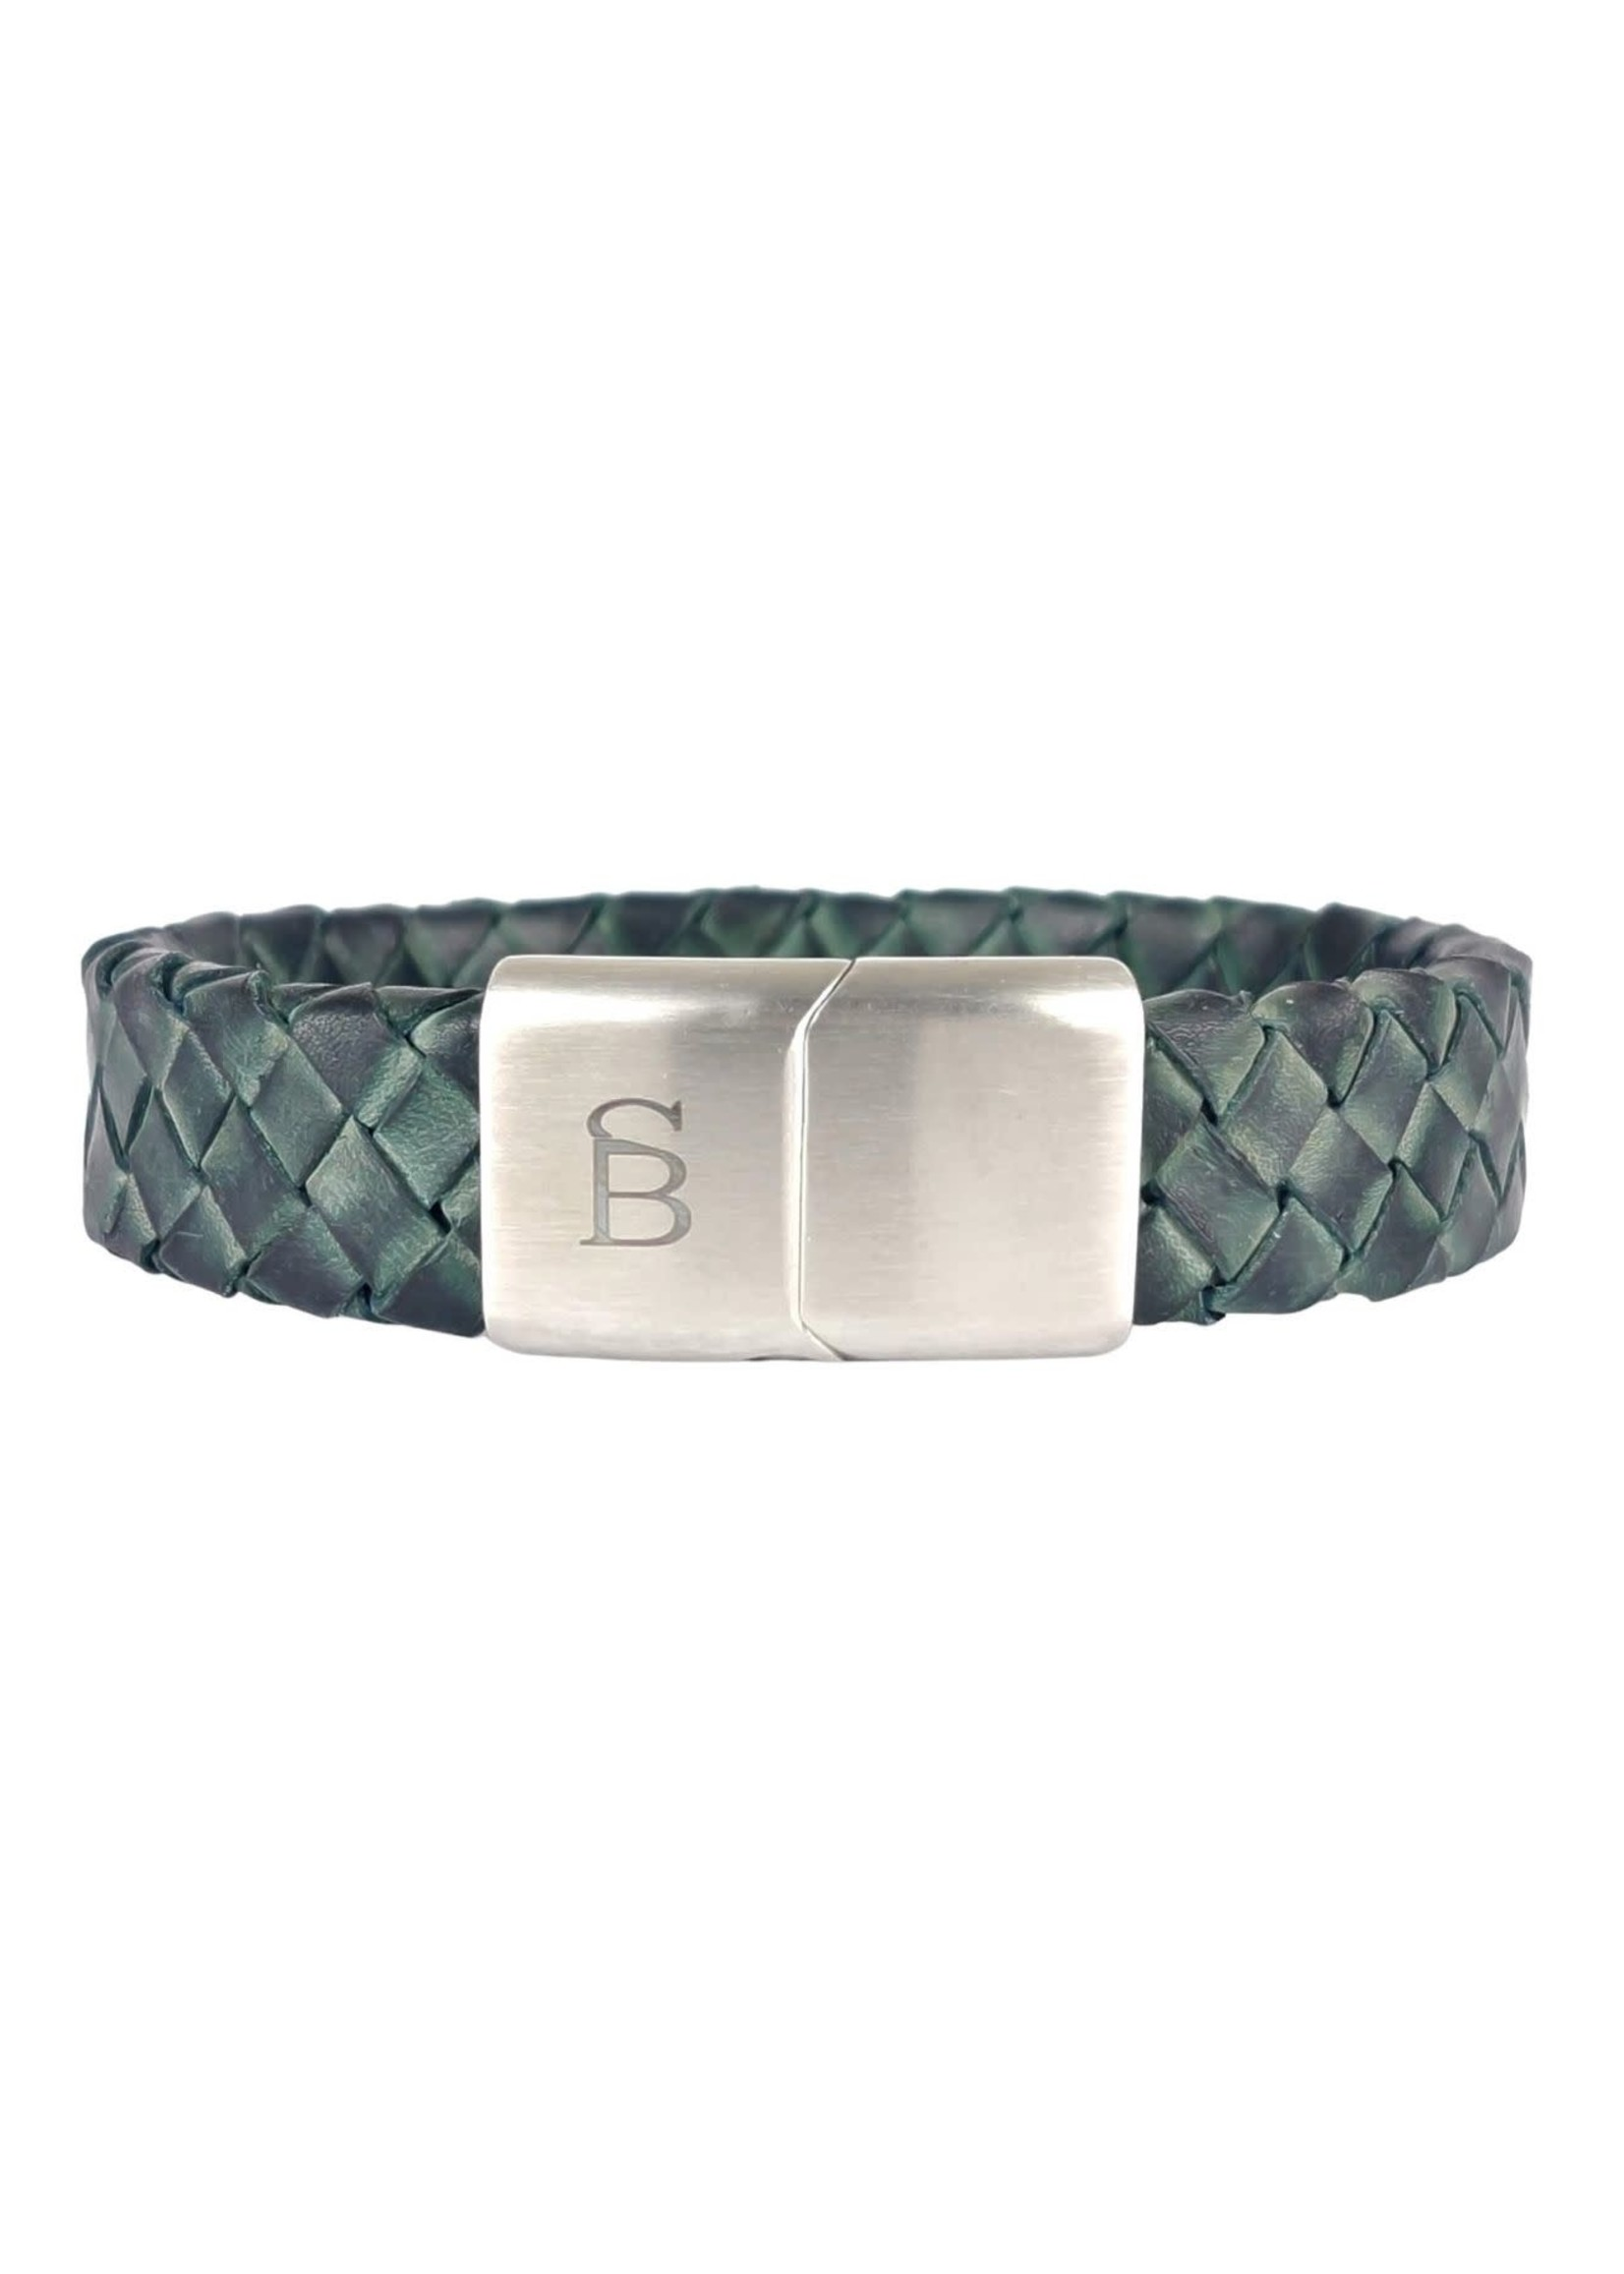 Steel & Barnett Leather Bracelet Preston | Matt Green | Steel&Barnett